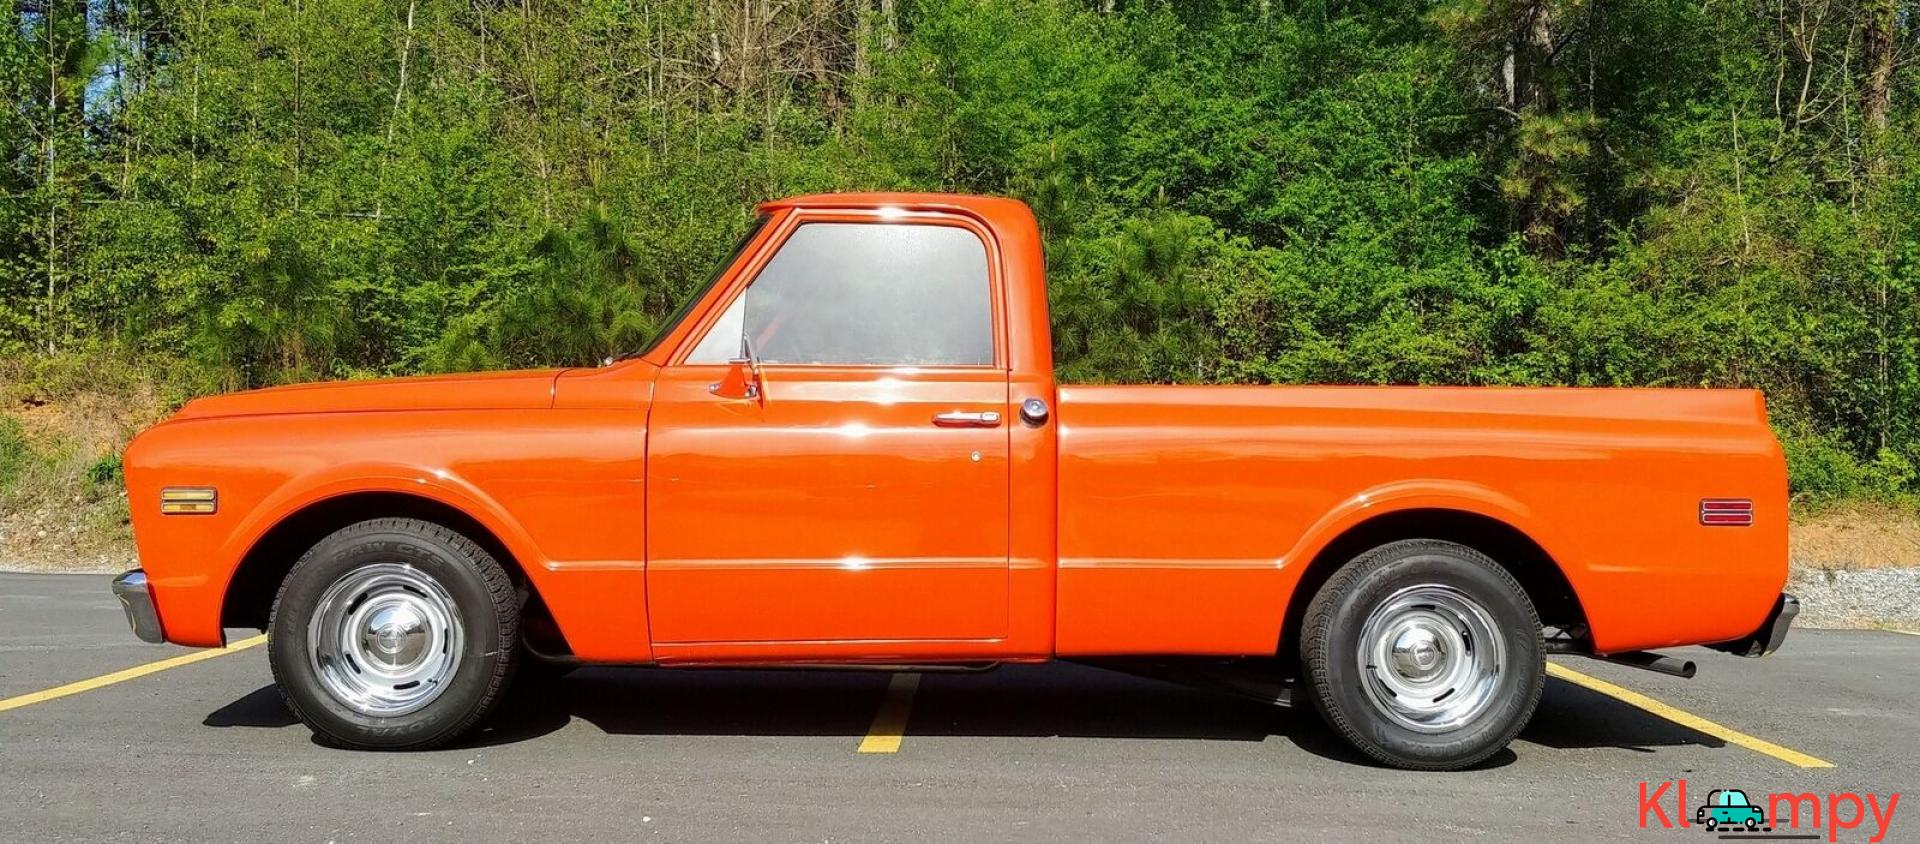 1968 Chevrolet Other Pickups C10 - 7/20